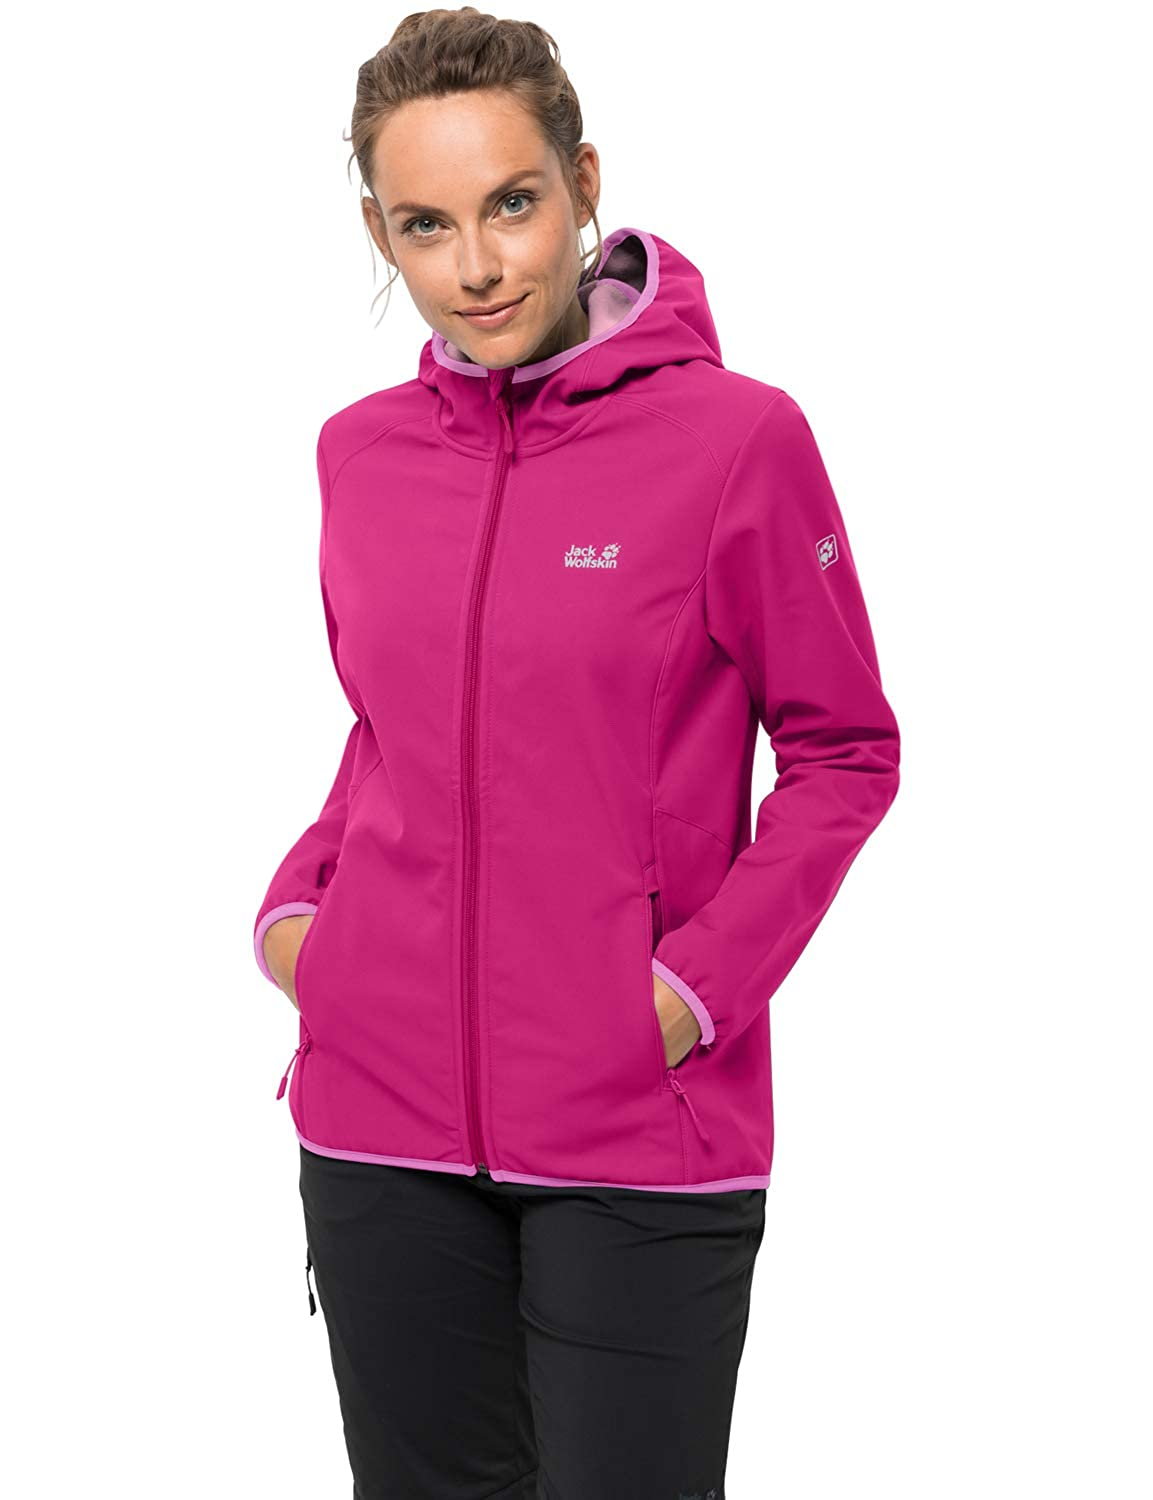 Pink Peony L Jack Wolfskin Northern Point Women's Softshell Jacket